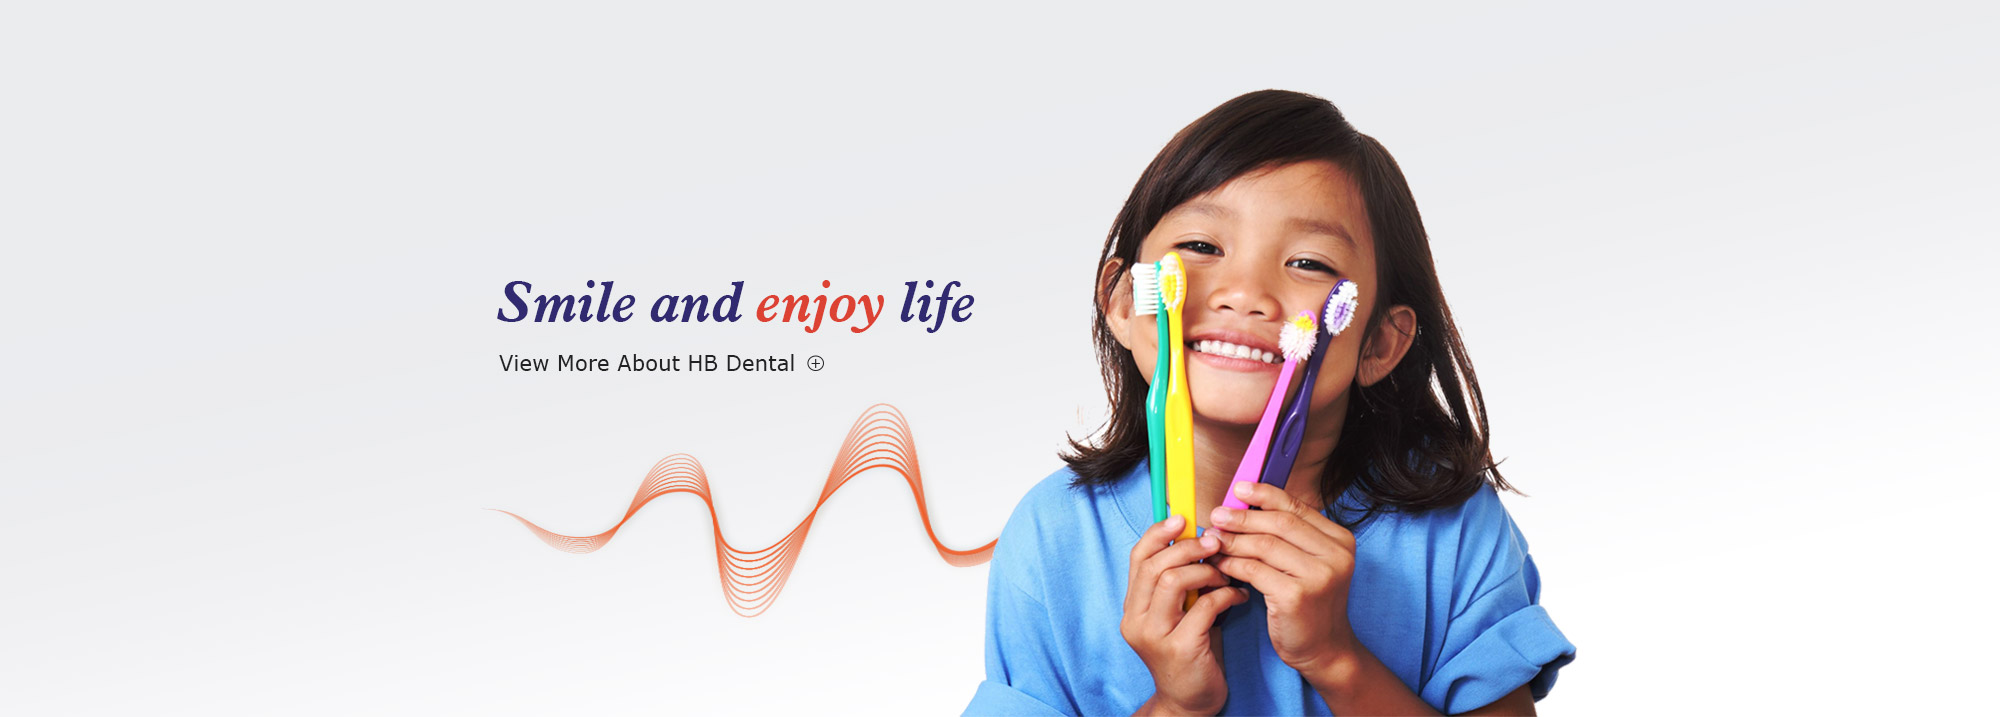 HB Dental unit make you smile and enjoy life